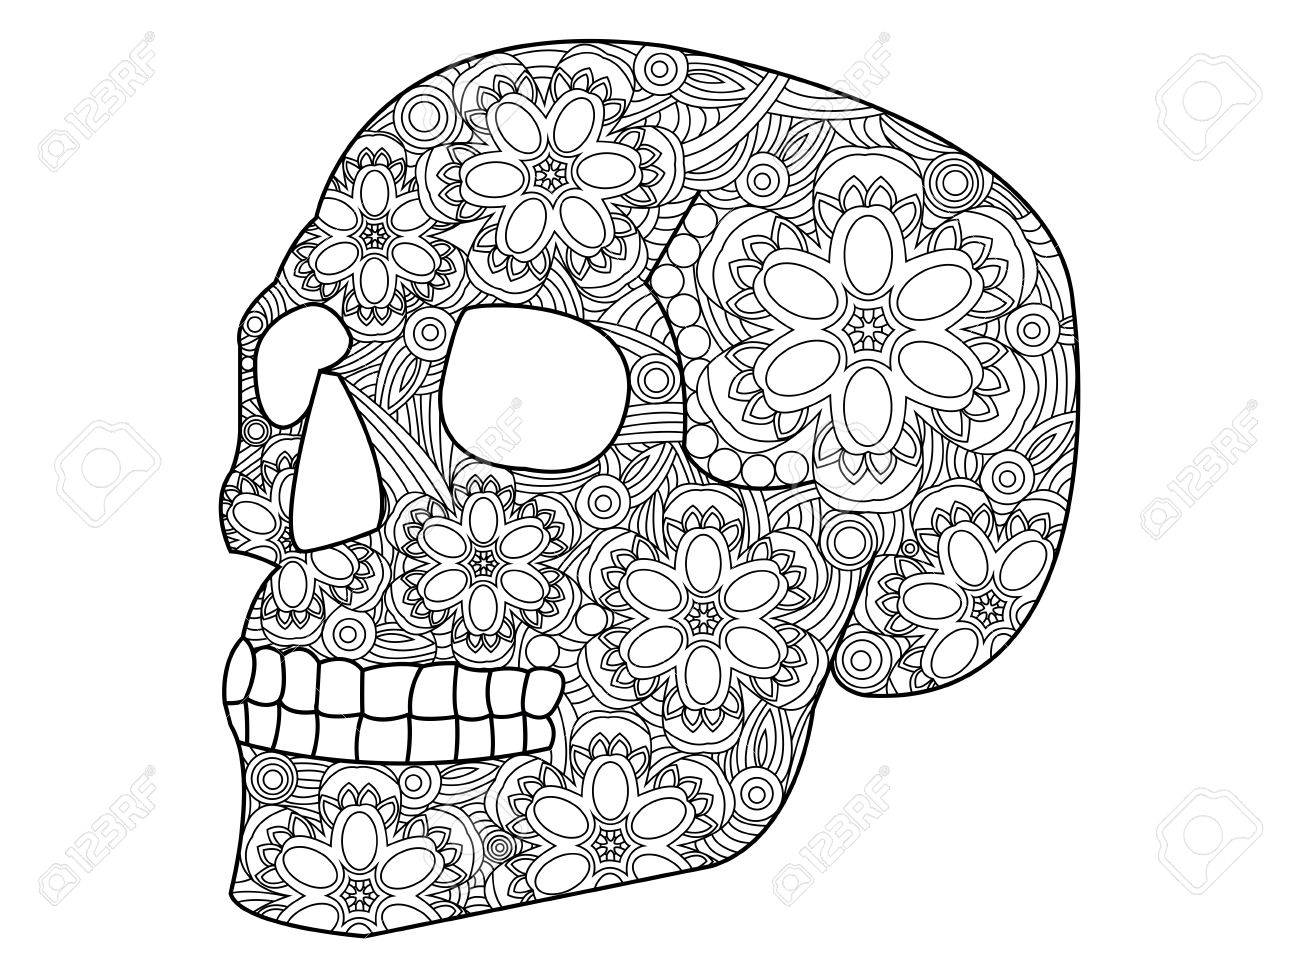 - Skull Coloring Book For Adults Vector Illustration. Anti-stress